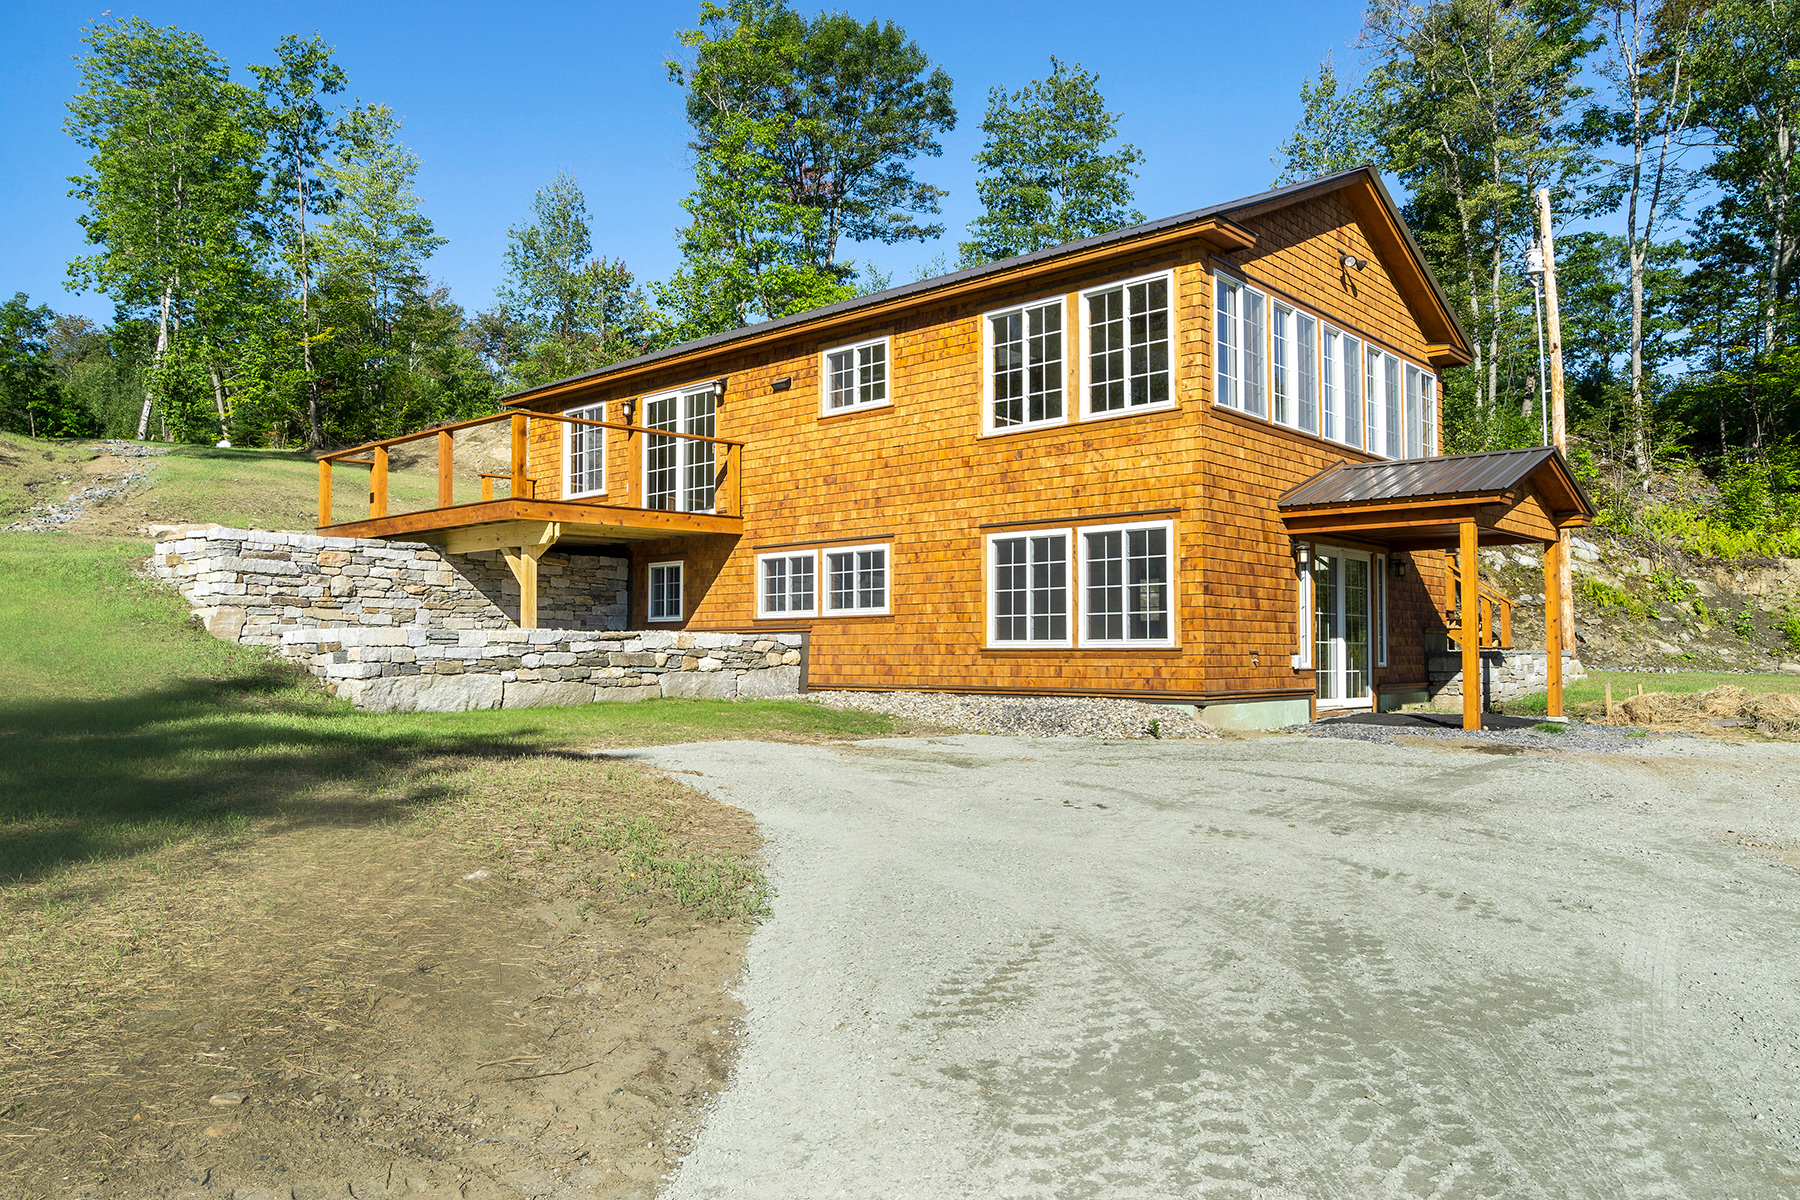 Single Family Homes for Sale at 420 Suitor Road, Waterford 420 Suitor Rd Waterford, Vermont 05819 United States